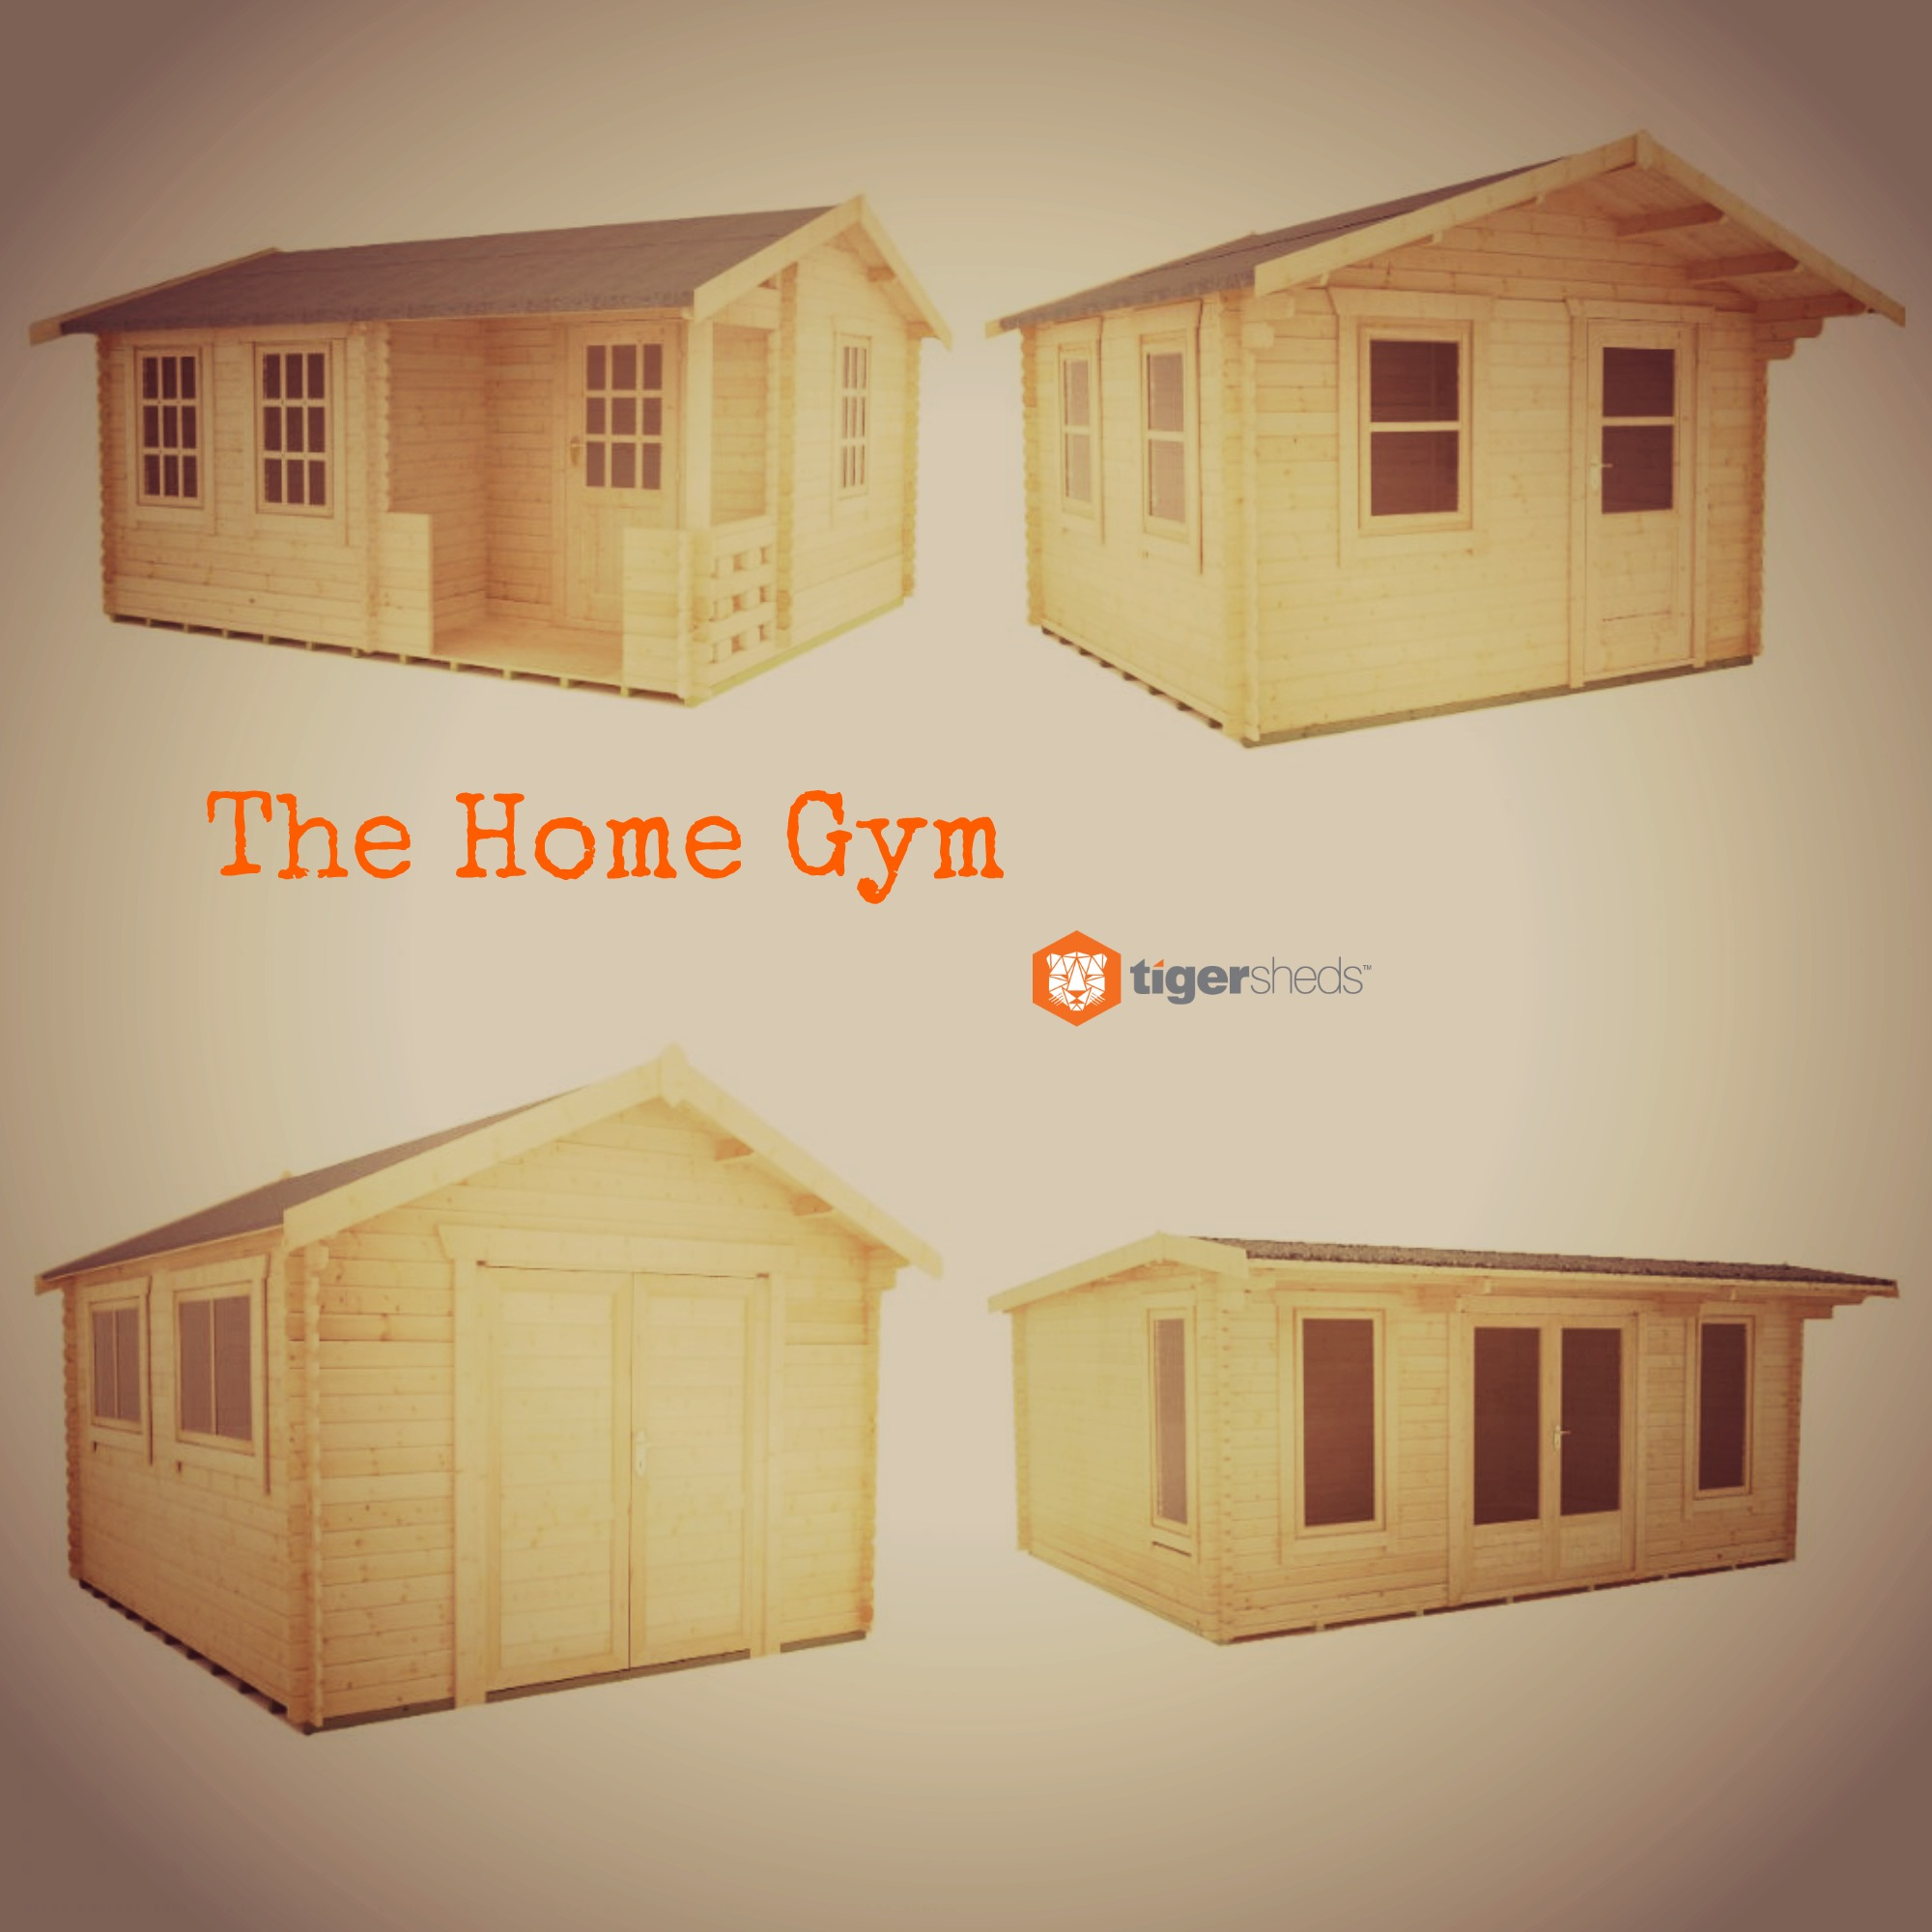 Home Gym In Shed: Why Upcycling Is Much More Than Just A Trend